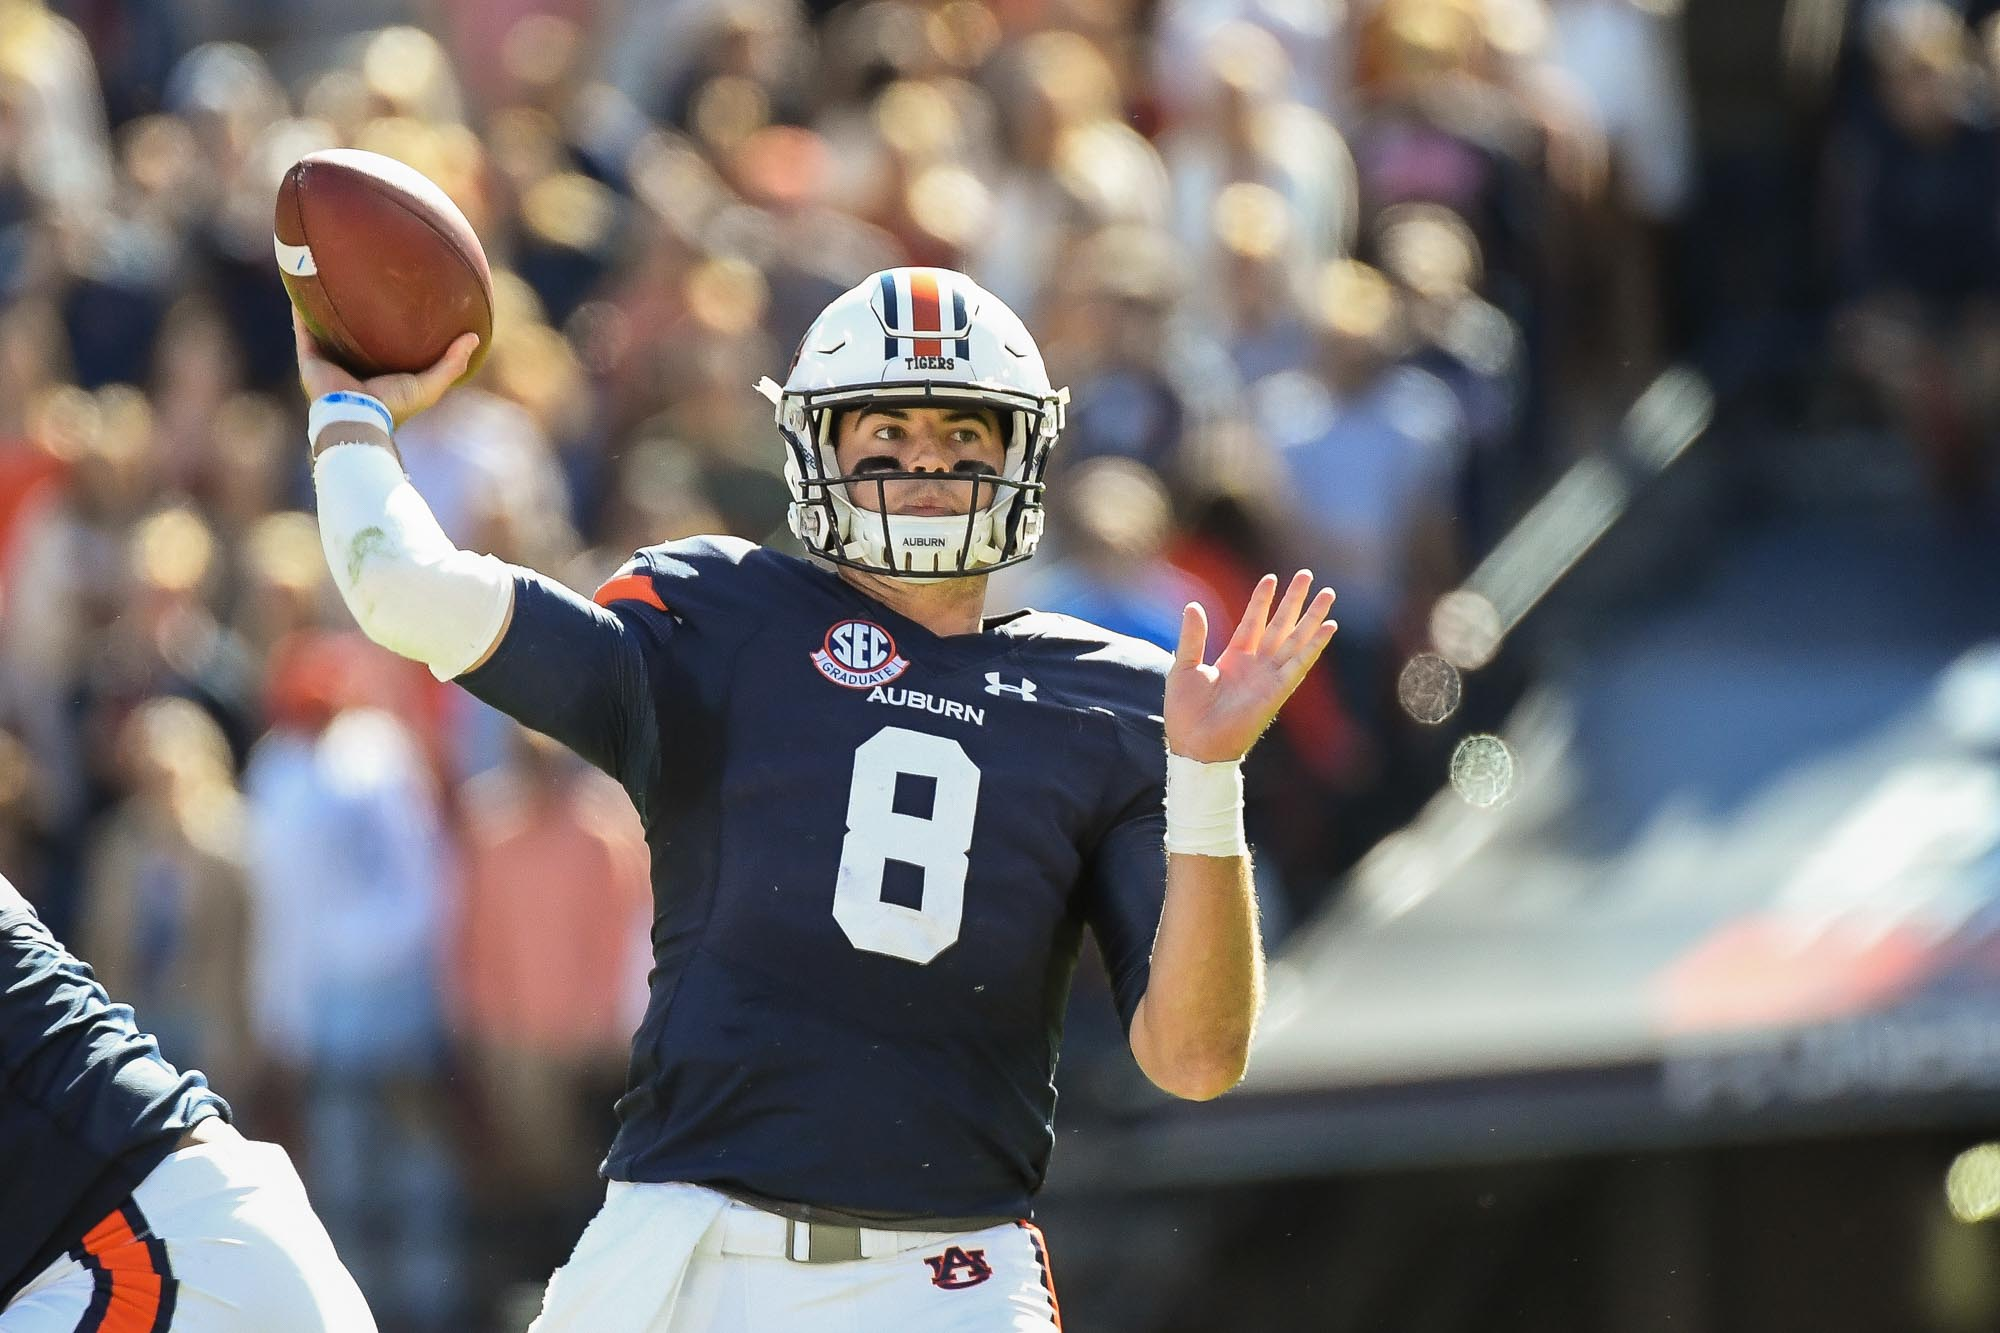 Auburn Qb Jarrett Stidham Declares Early For Nfl Draft Auburn University Athletics